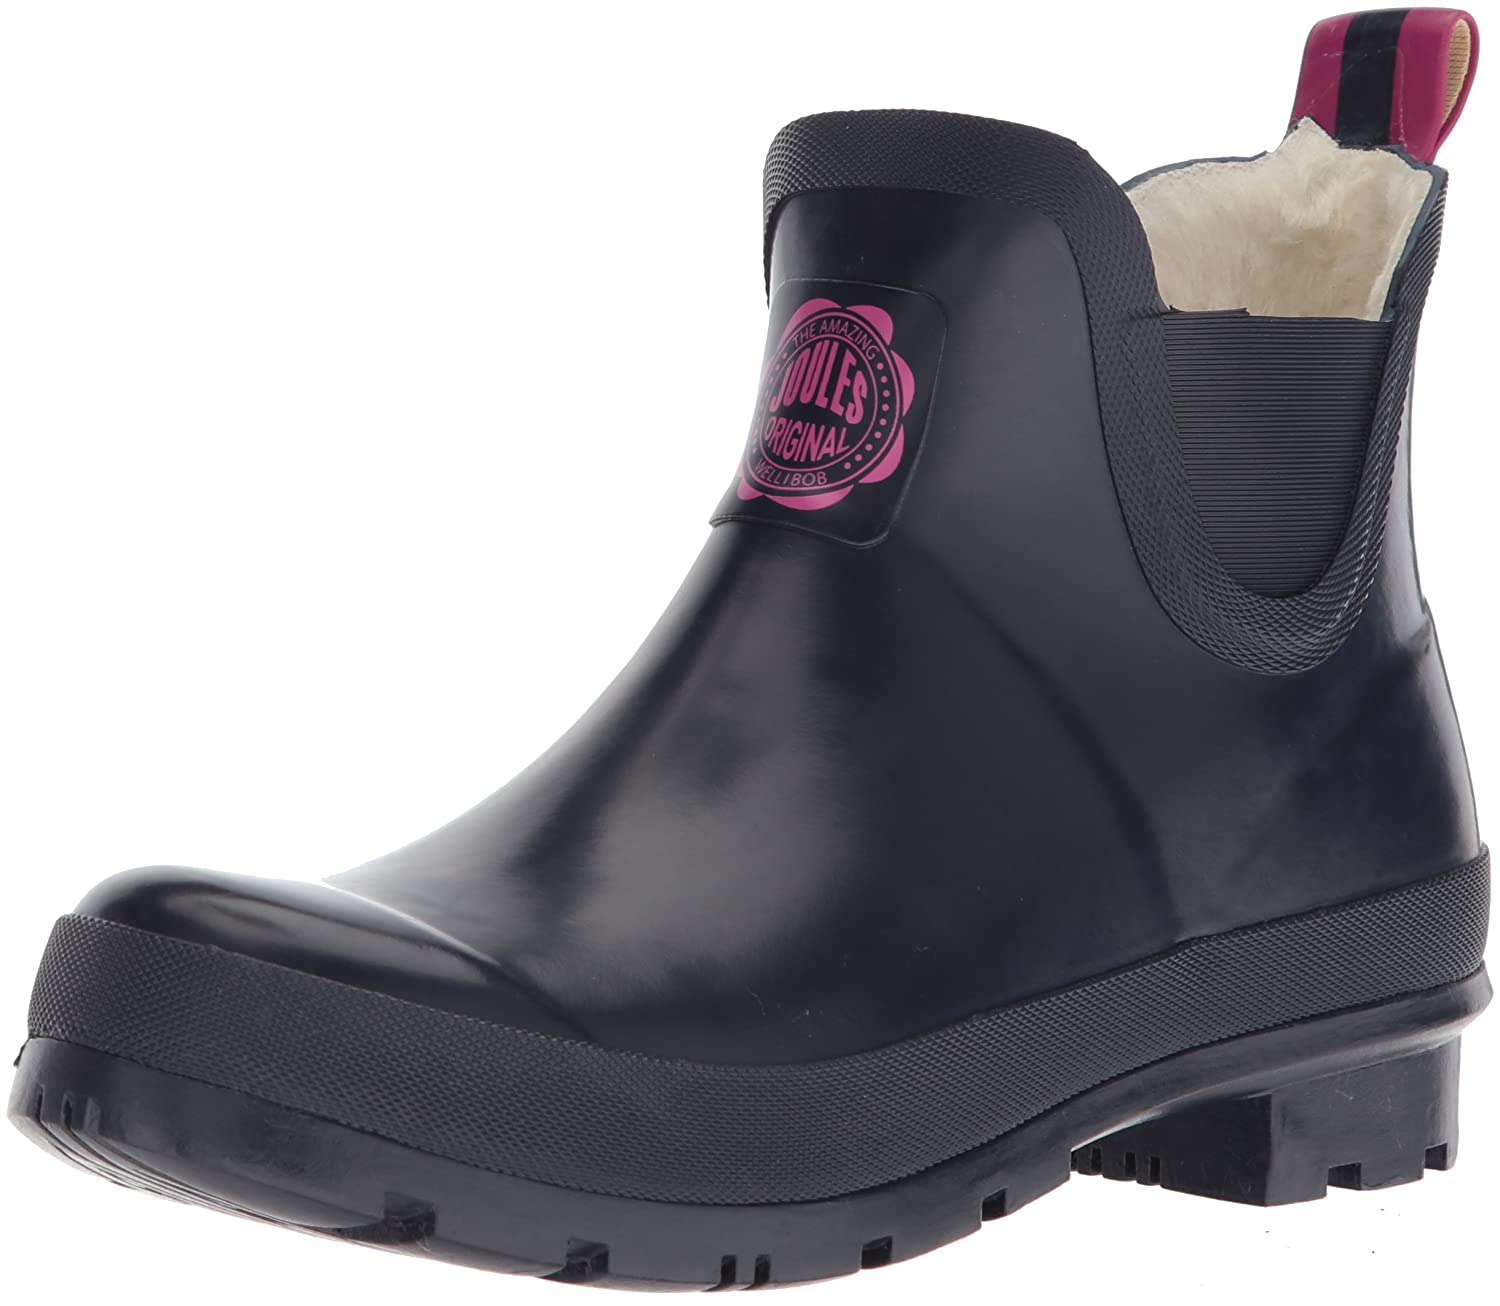 最上の品質な Joules Boot Women's Wellibob Ankle-High Rubber US Rain Boot B00VLNRG16 8 8 B(M) US|French Navy French Navy 8 B(M) US, HEAVENS:3c5d4f44 --- svecha37.ru